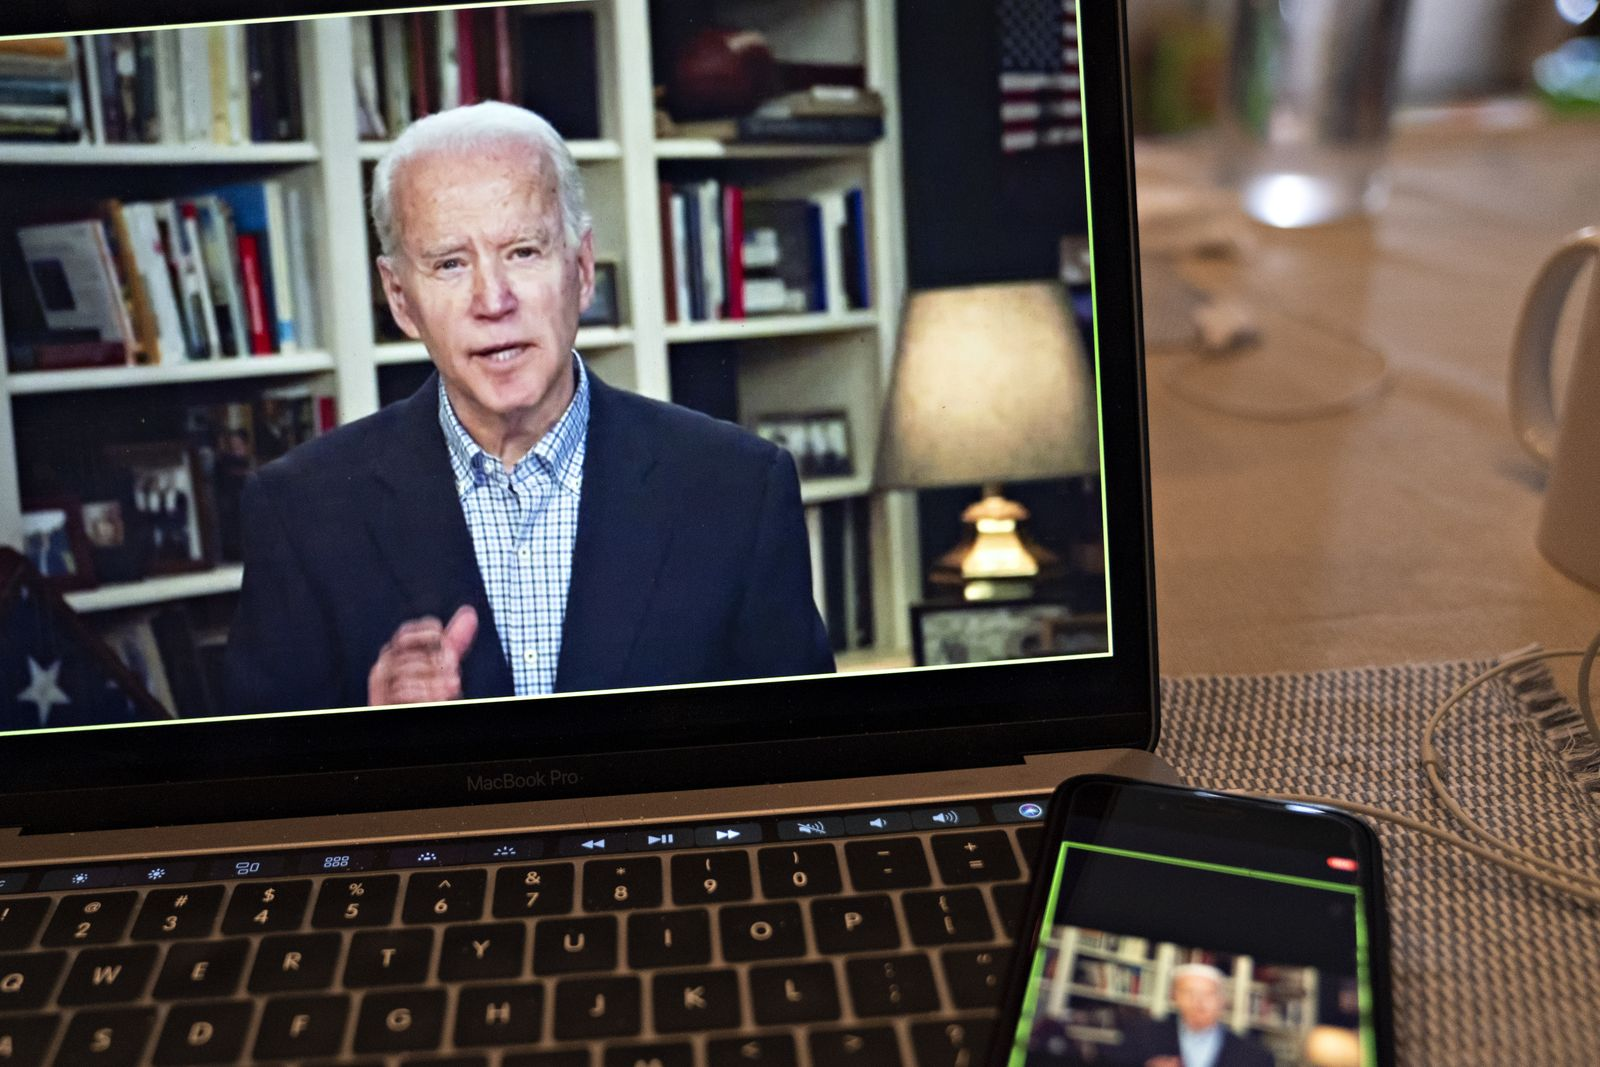 2020 Democratic Presidential Candidate Joe Biden Hosts Virtual Press Briefing